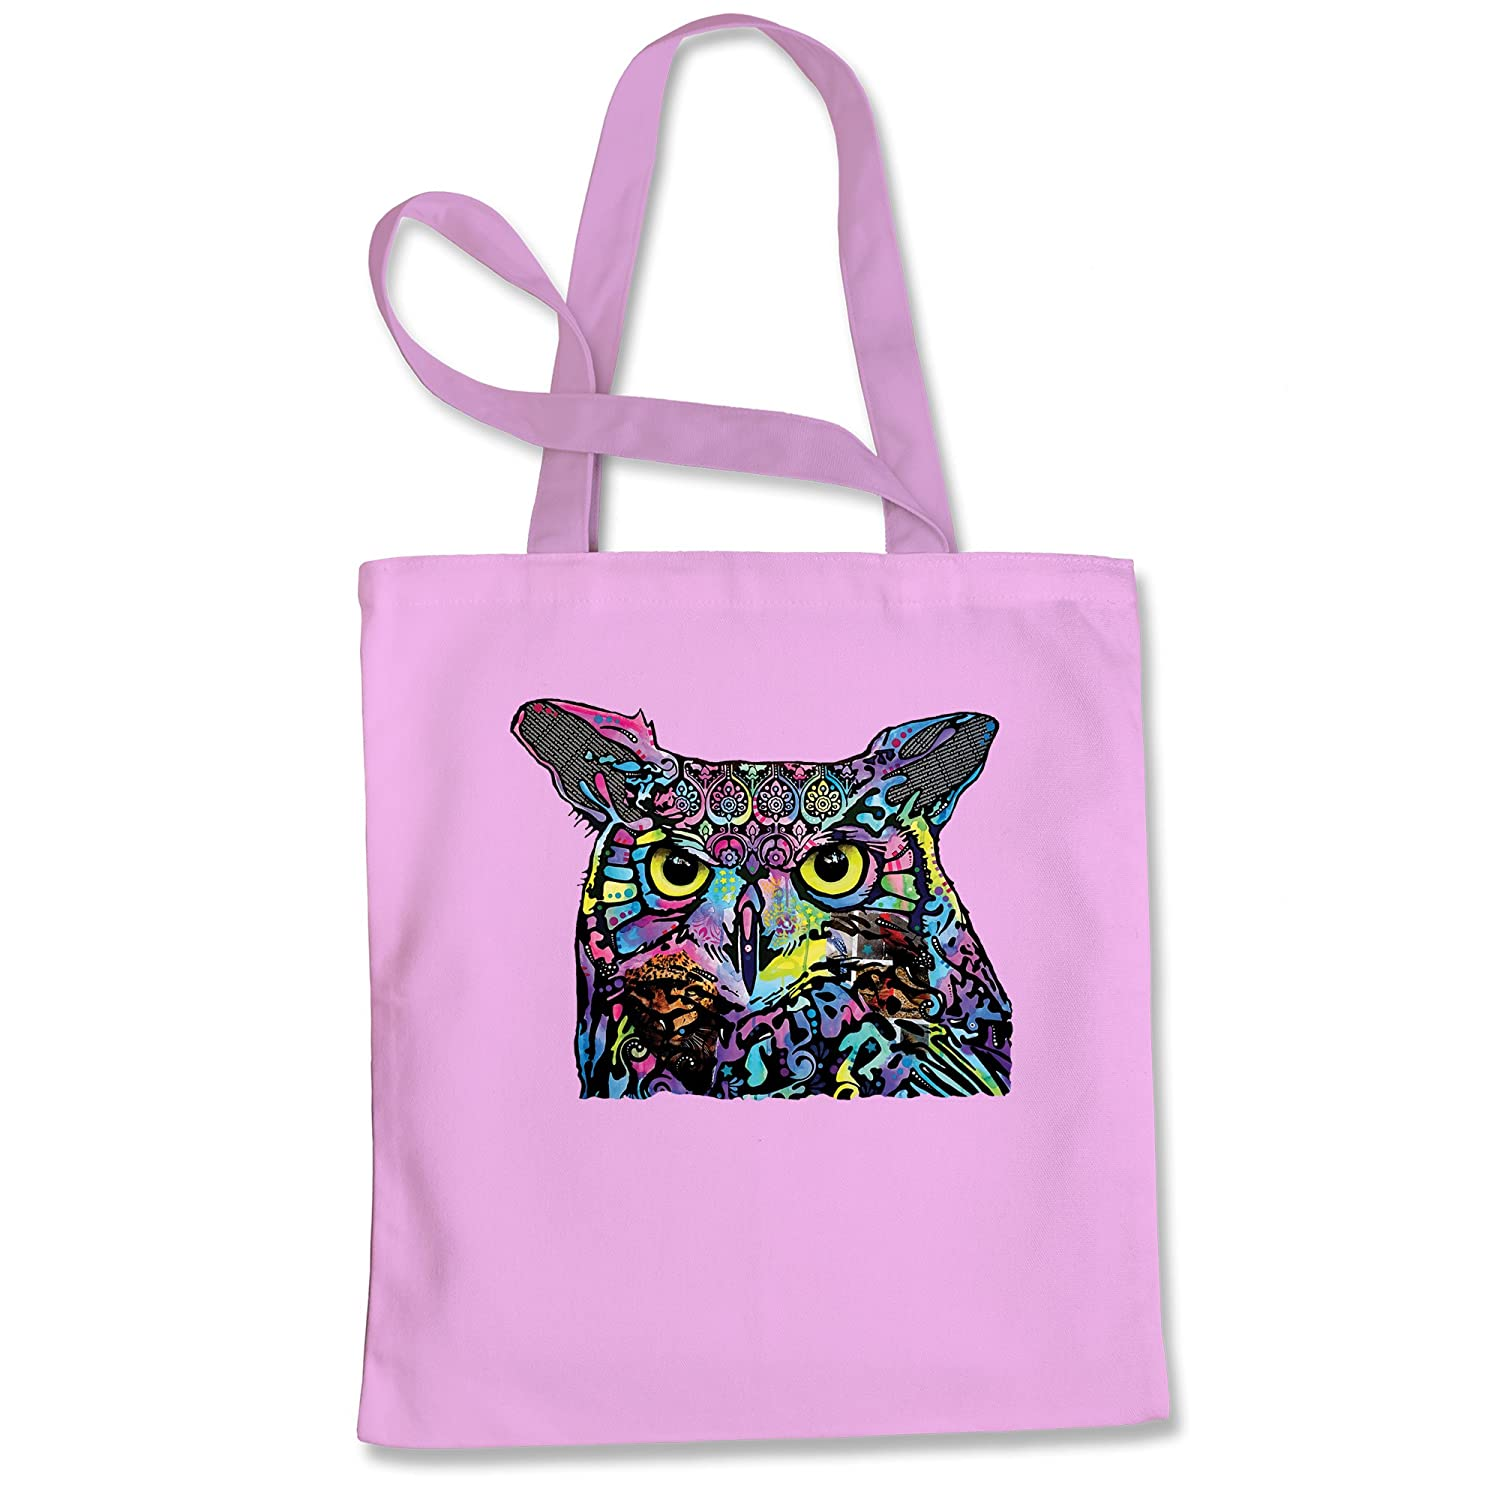 Expression Tees Neon Owl Shopping Tote Bag